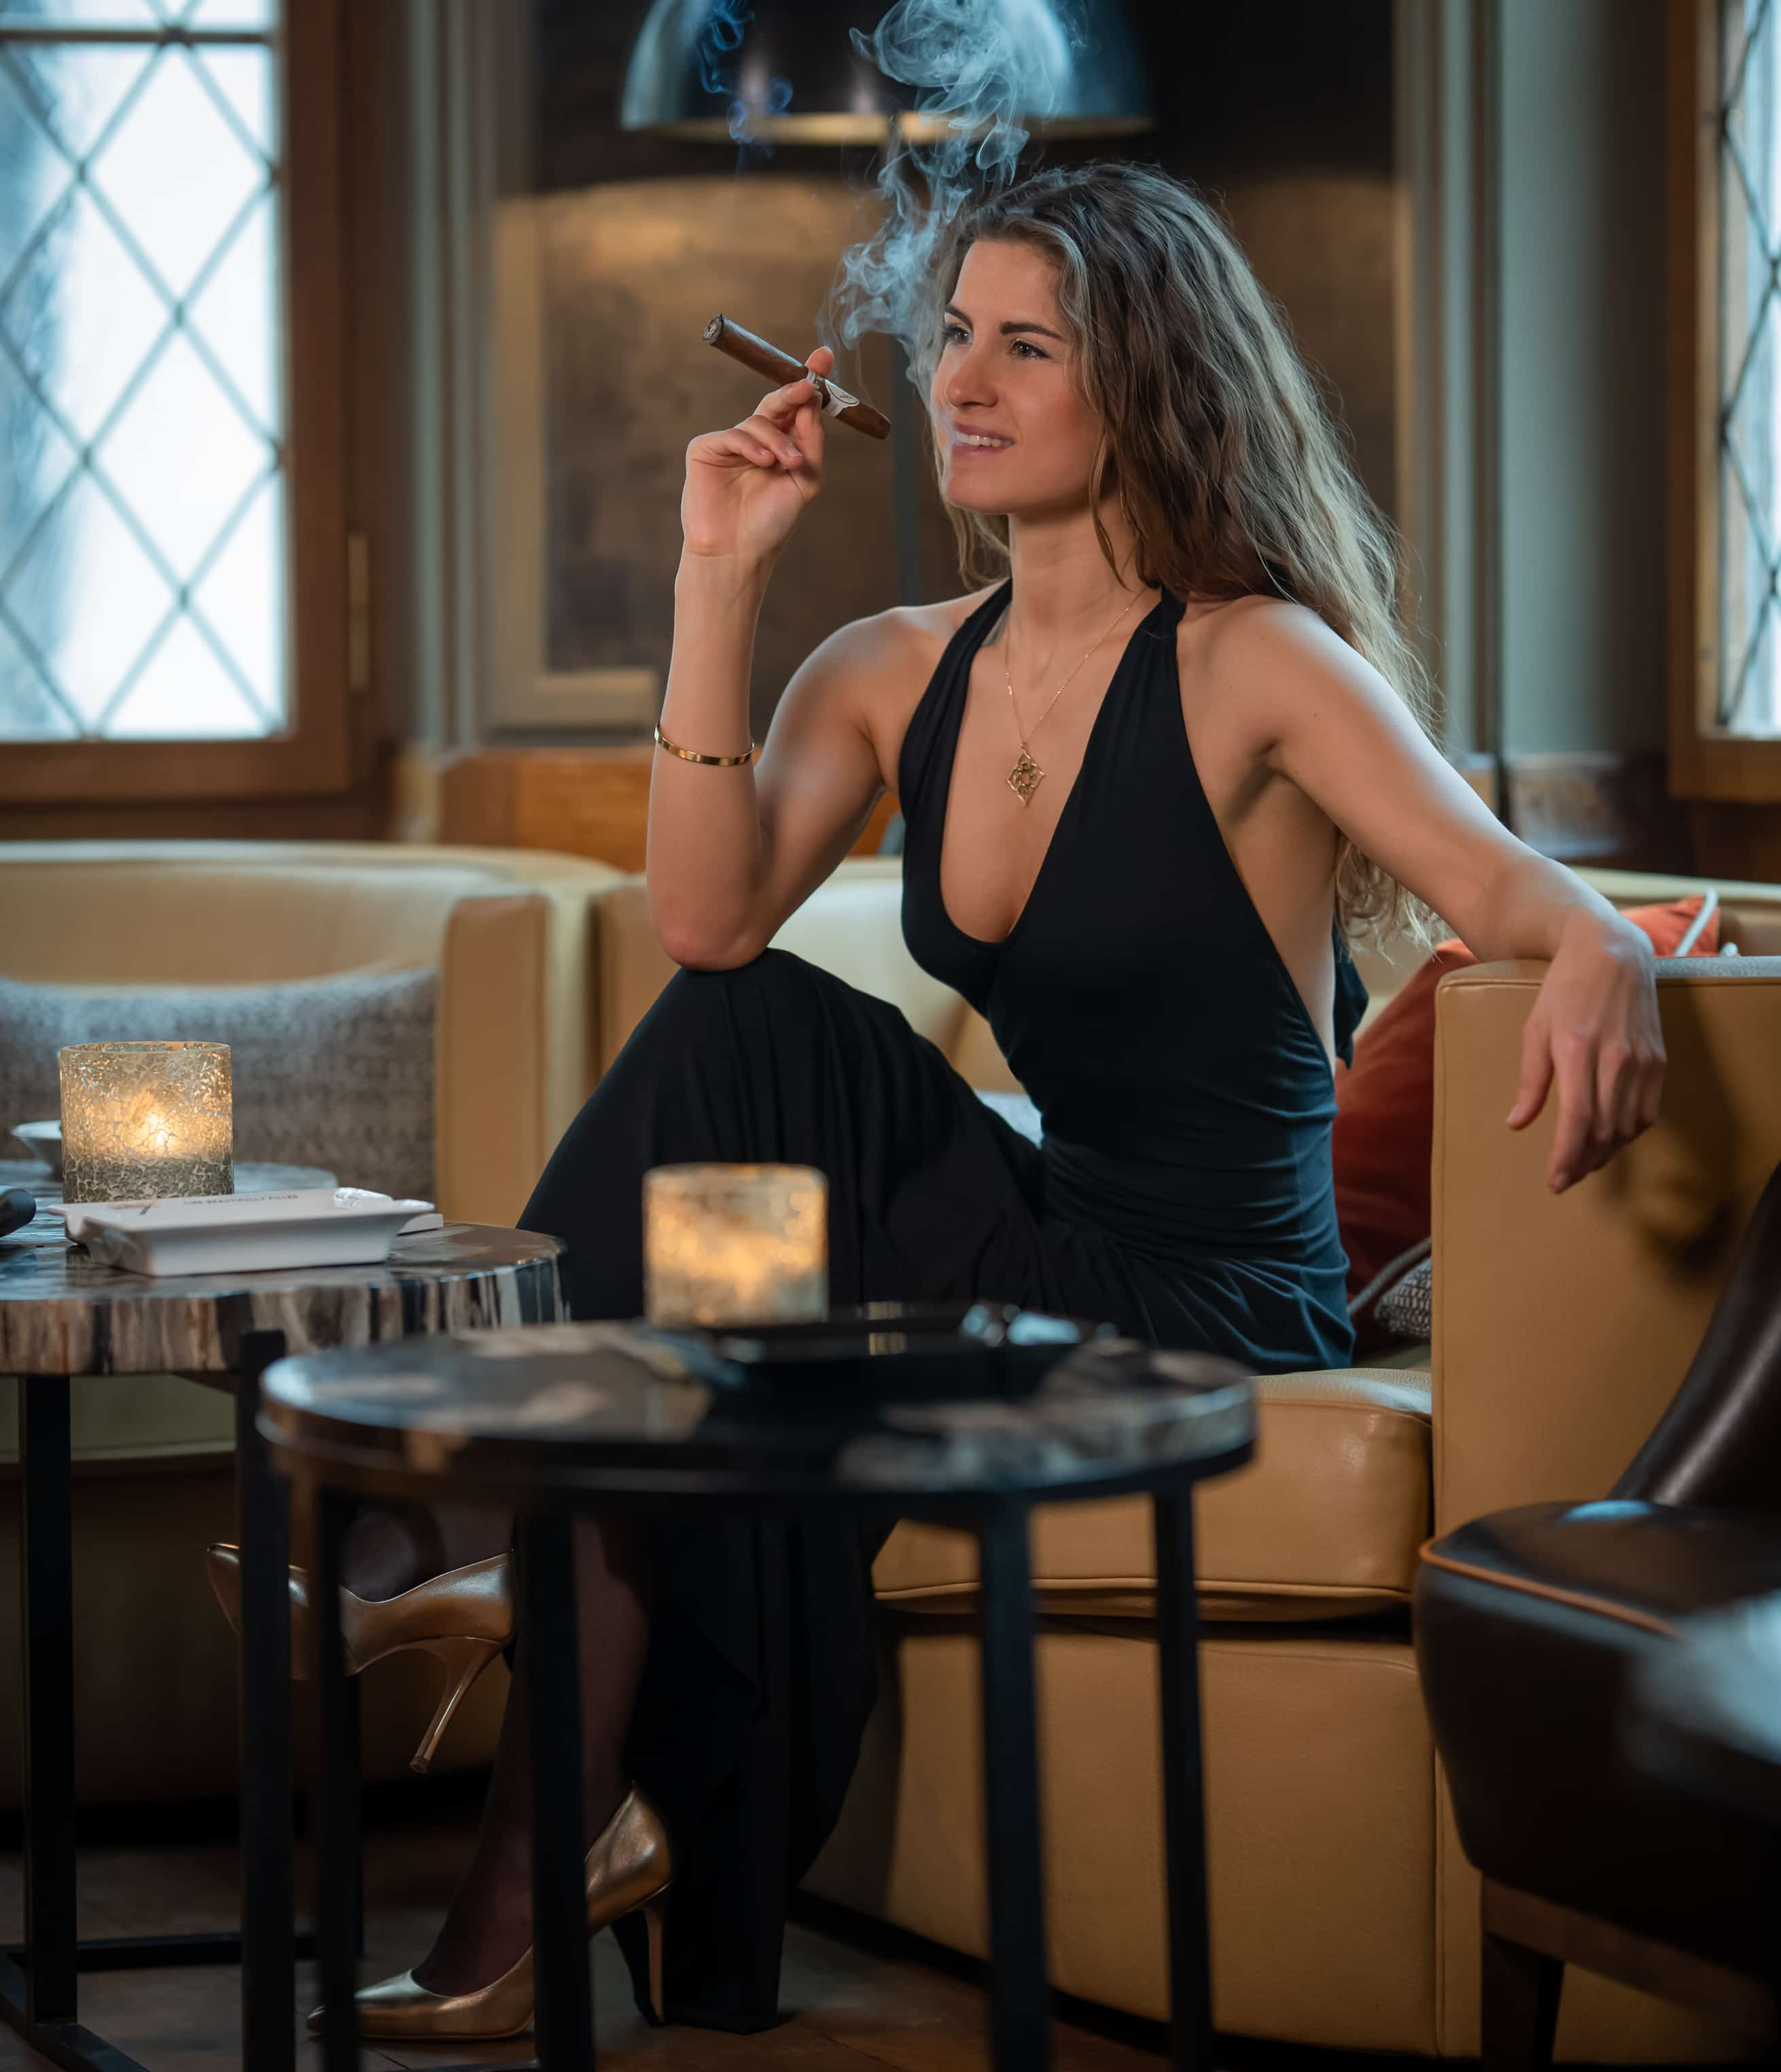 it_classy_pretty_and_quite_attractive_if_a_lady_knows_how_to_smoke_a_cigar_cigarmonkeys_com_cigar_life_style_7.jpg